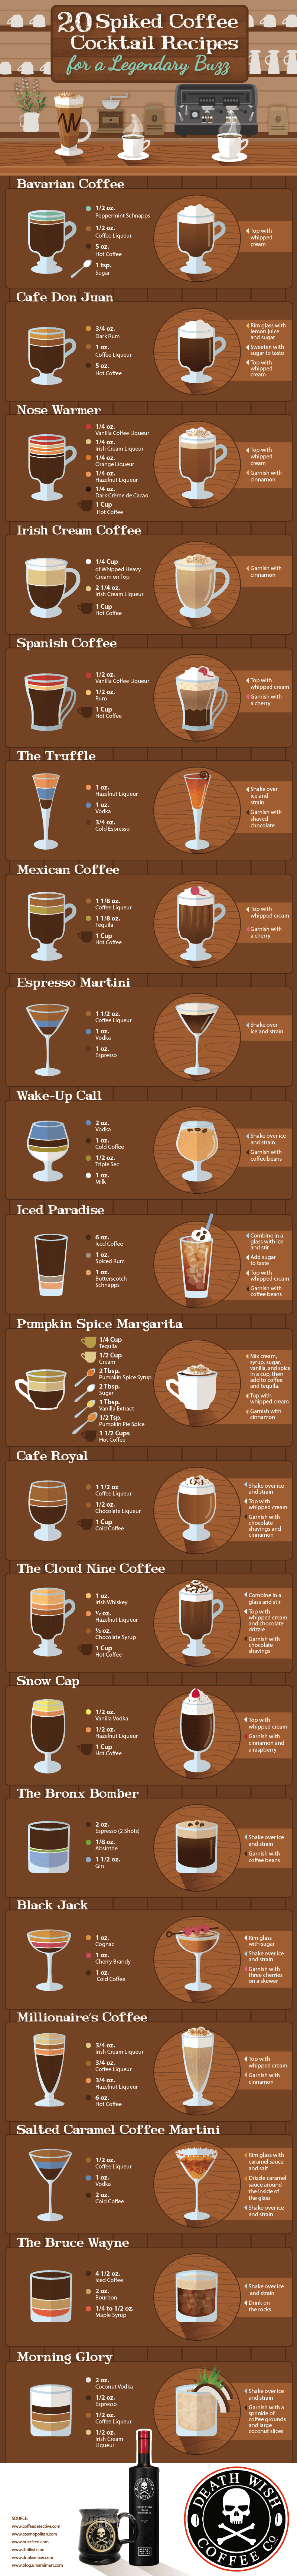 20 Spiked Coffee Cocktail Recipes for a Legendary Buzz